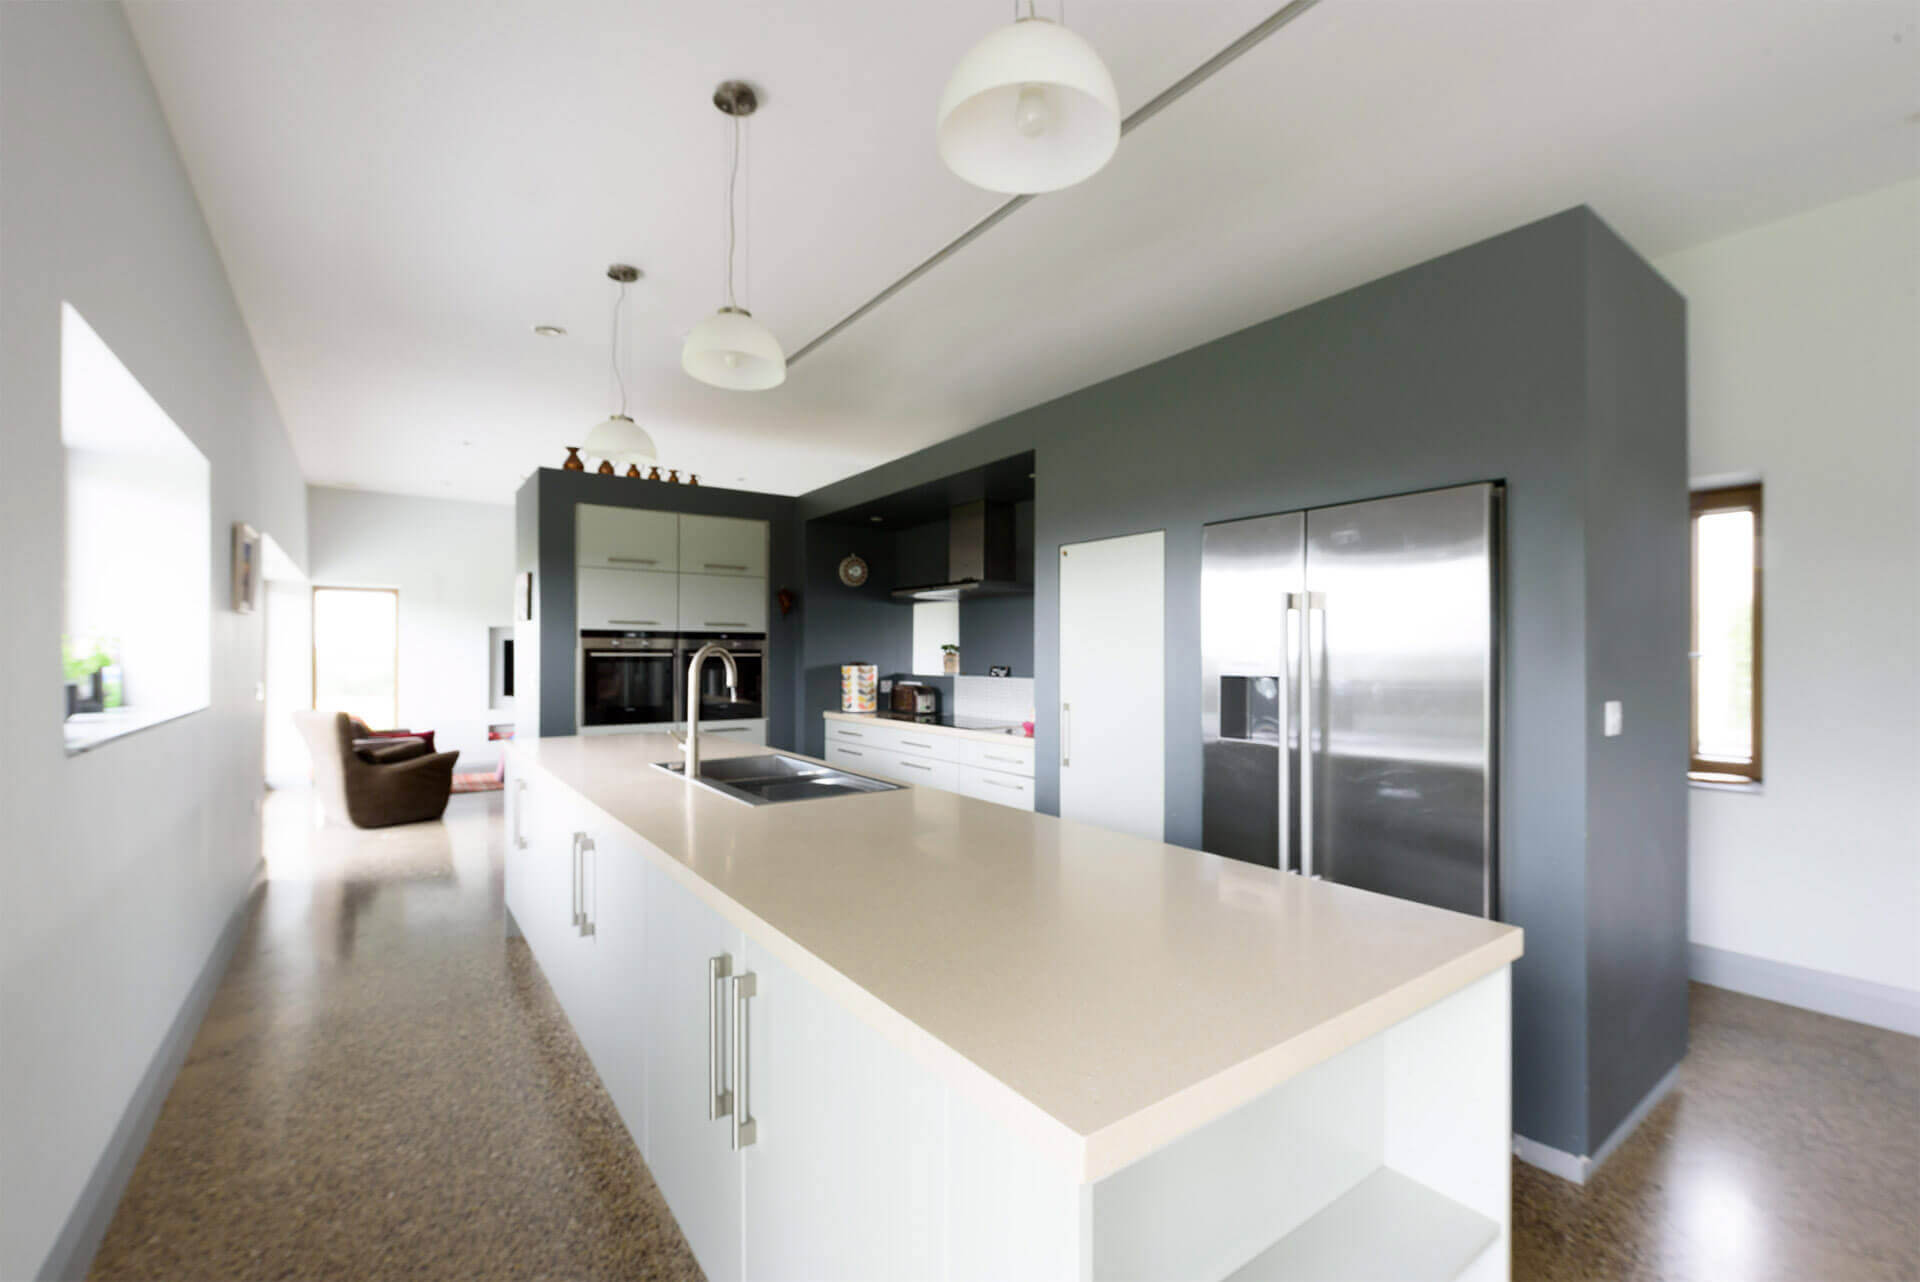 Bespoke kitchen with grey wall and white island units and polished concrete floor.